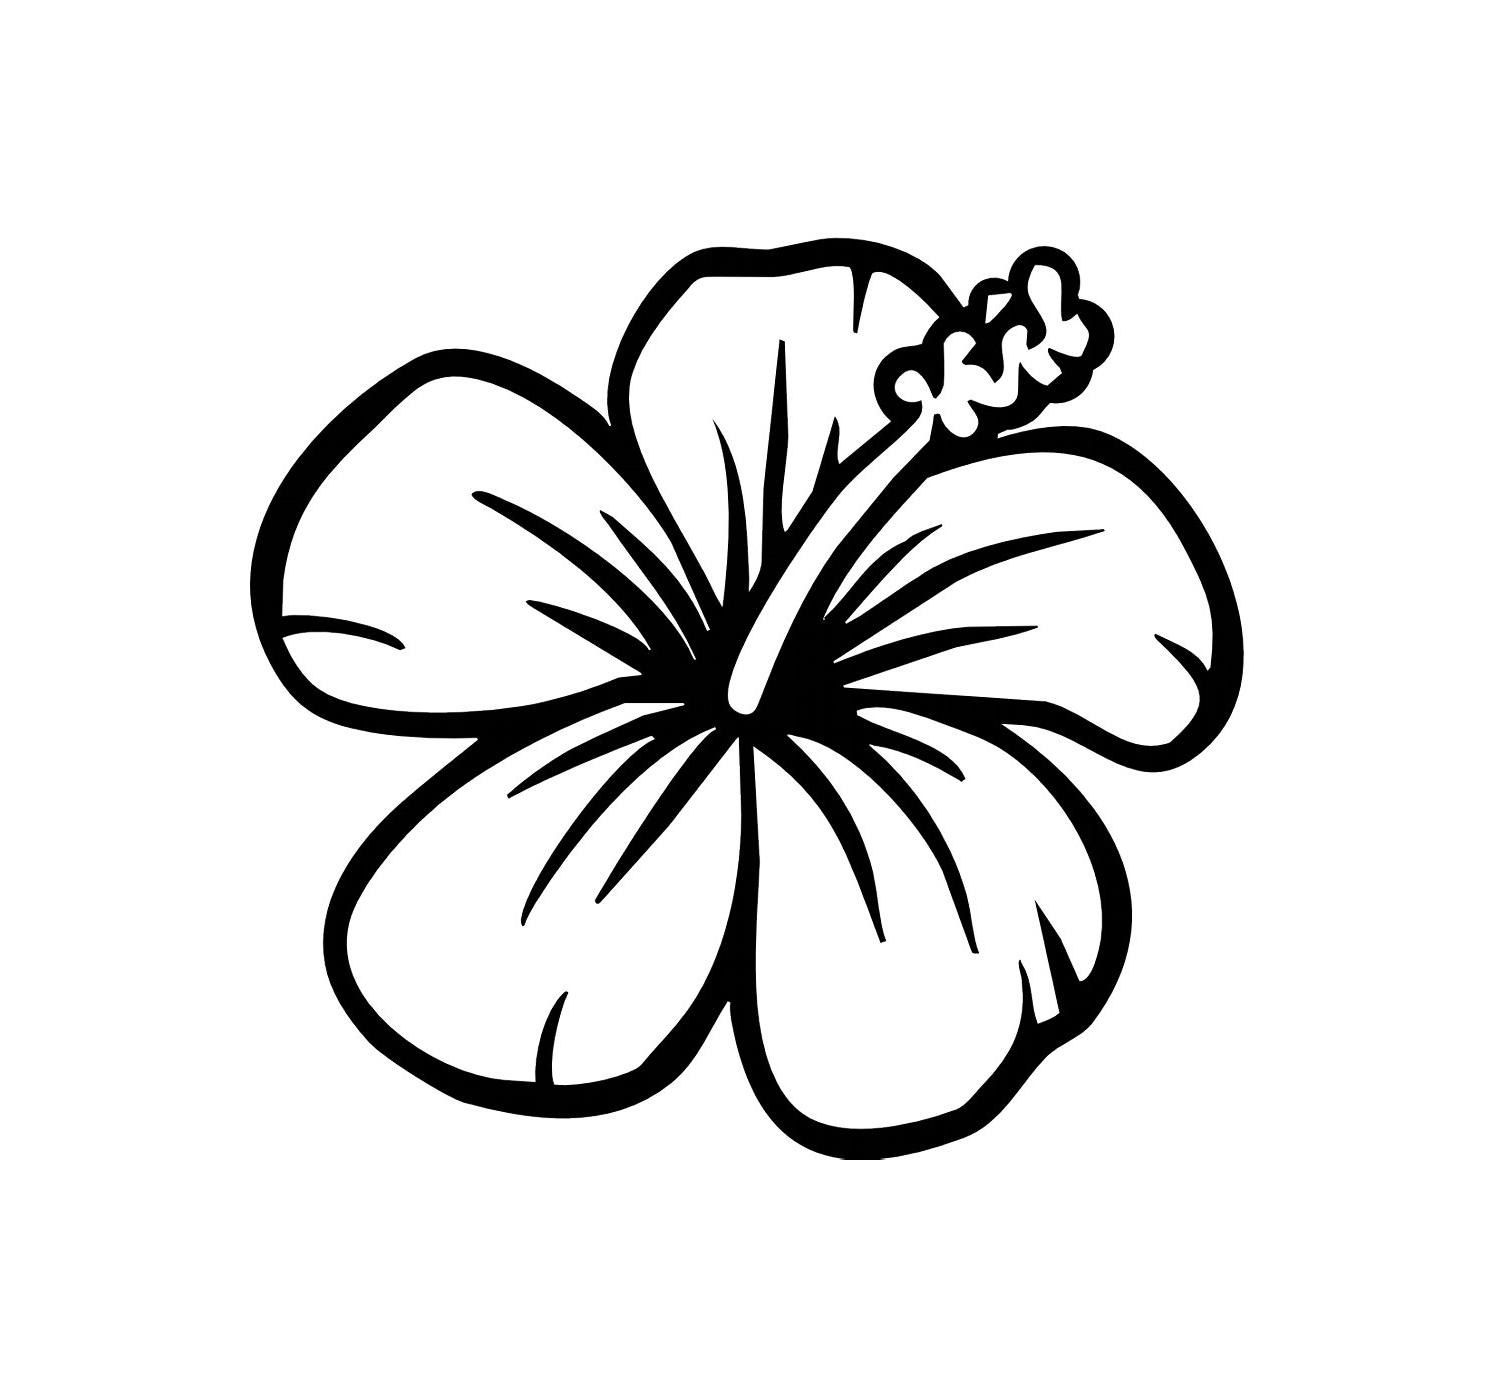 Hibiscus Flower Tattoo Idea With Images Easy Flower Drawings